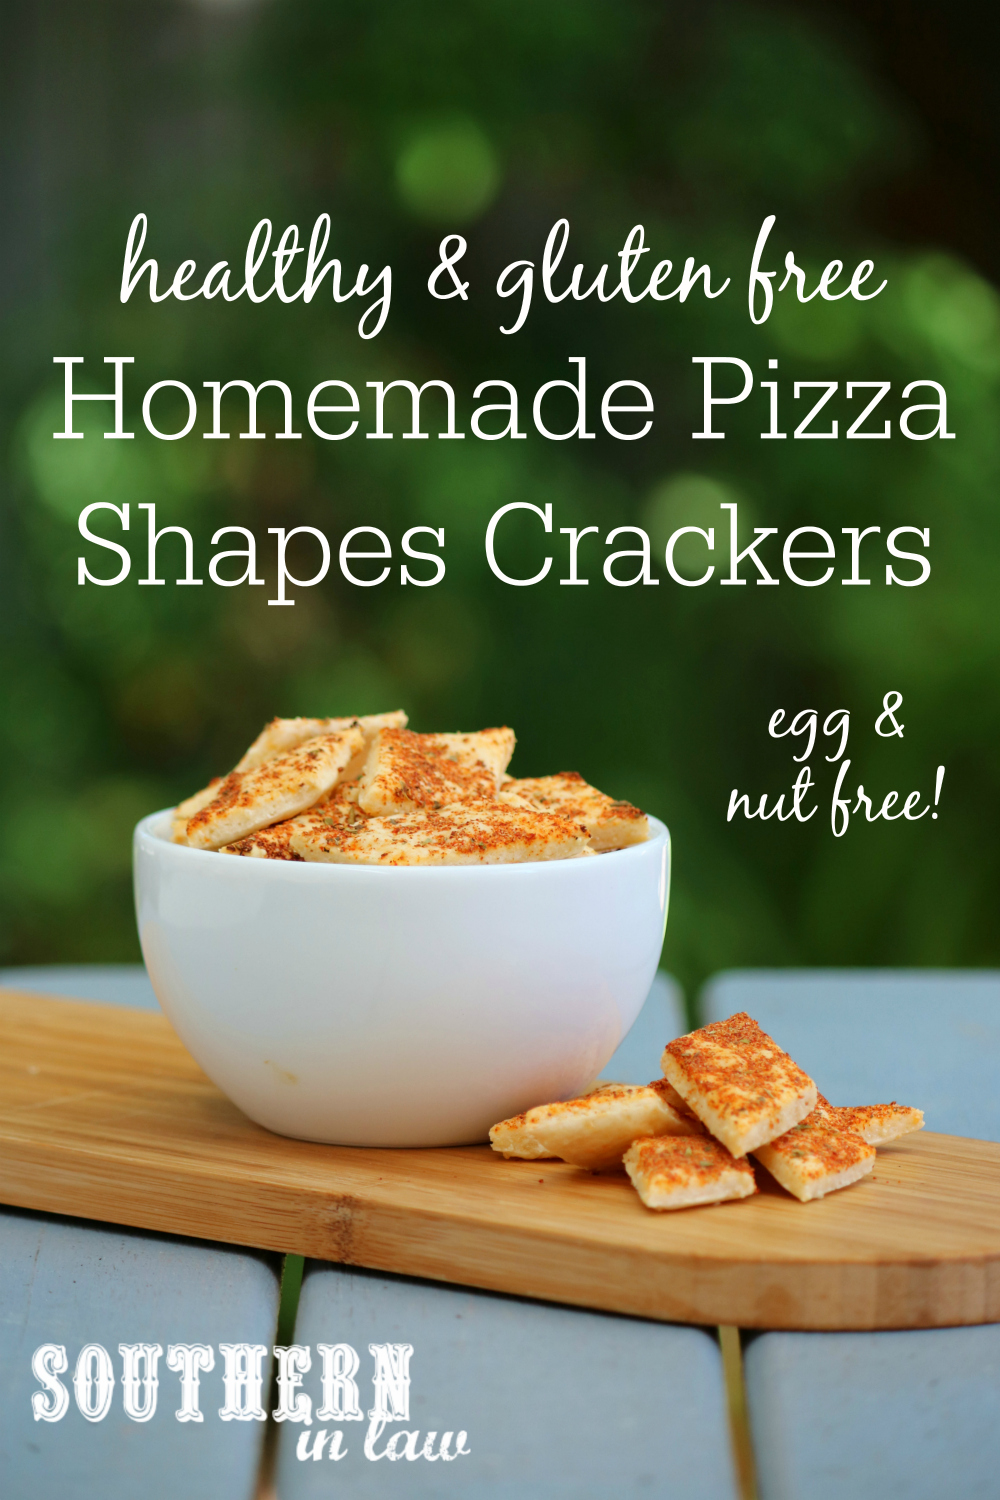 Southern in law recipe easy homemade pizza shapes crackers gluten easy homemade pizza shapes recipe arnotts biscuits australia day australian gluten free forumfinder Choice Image